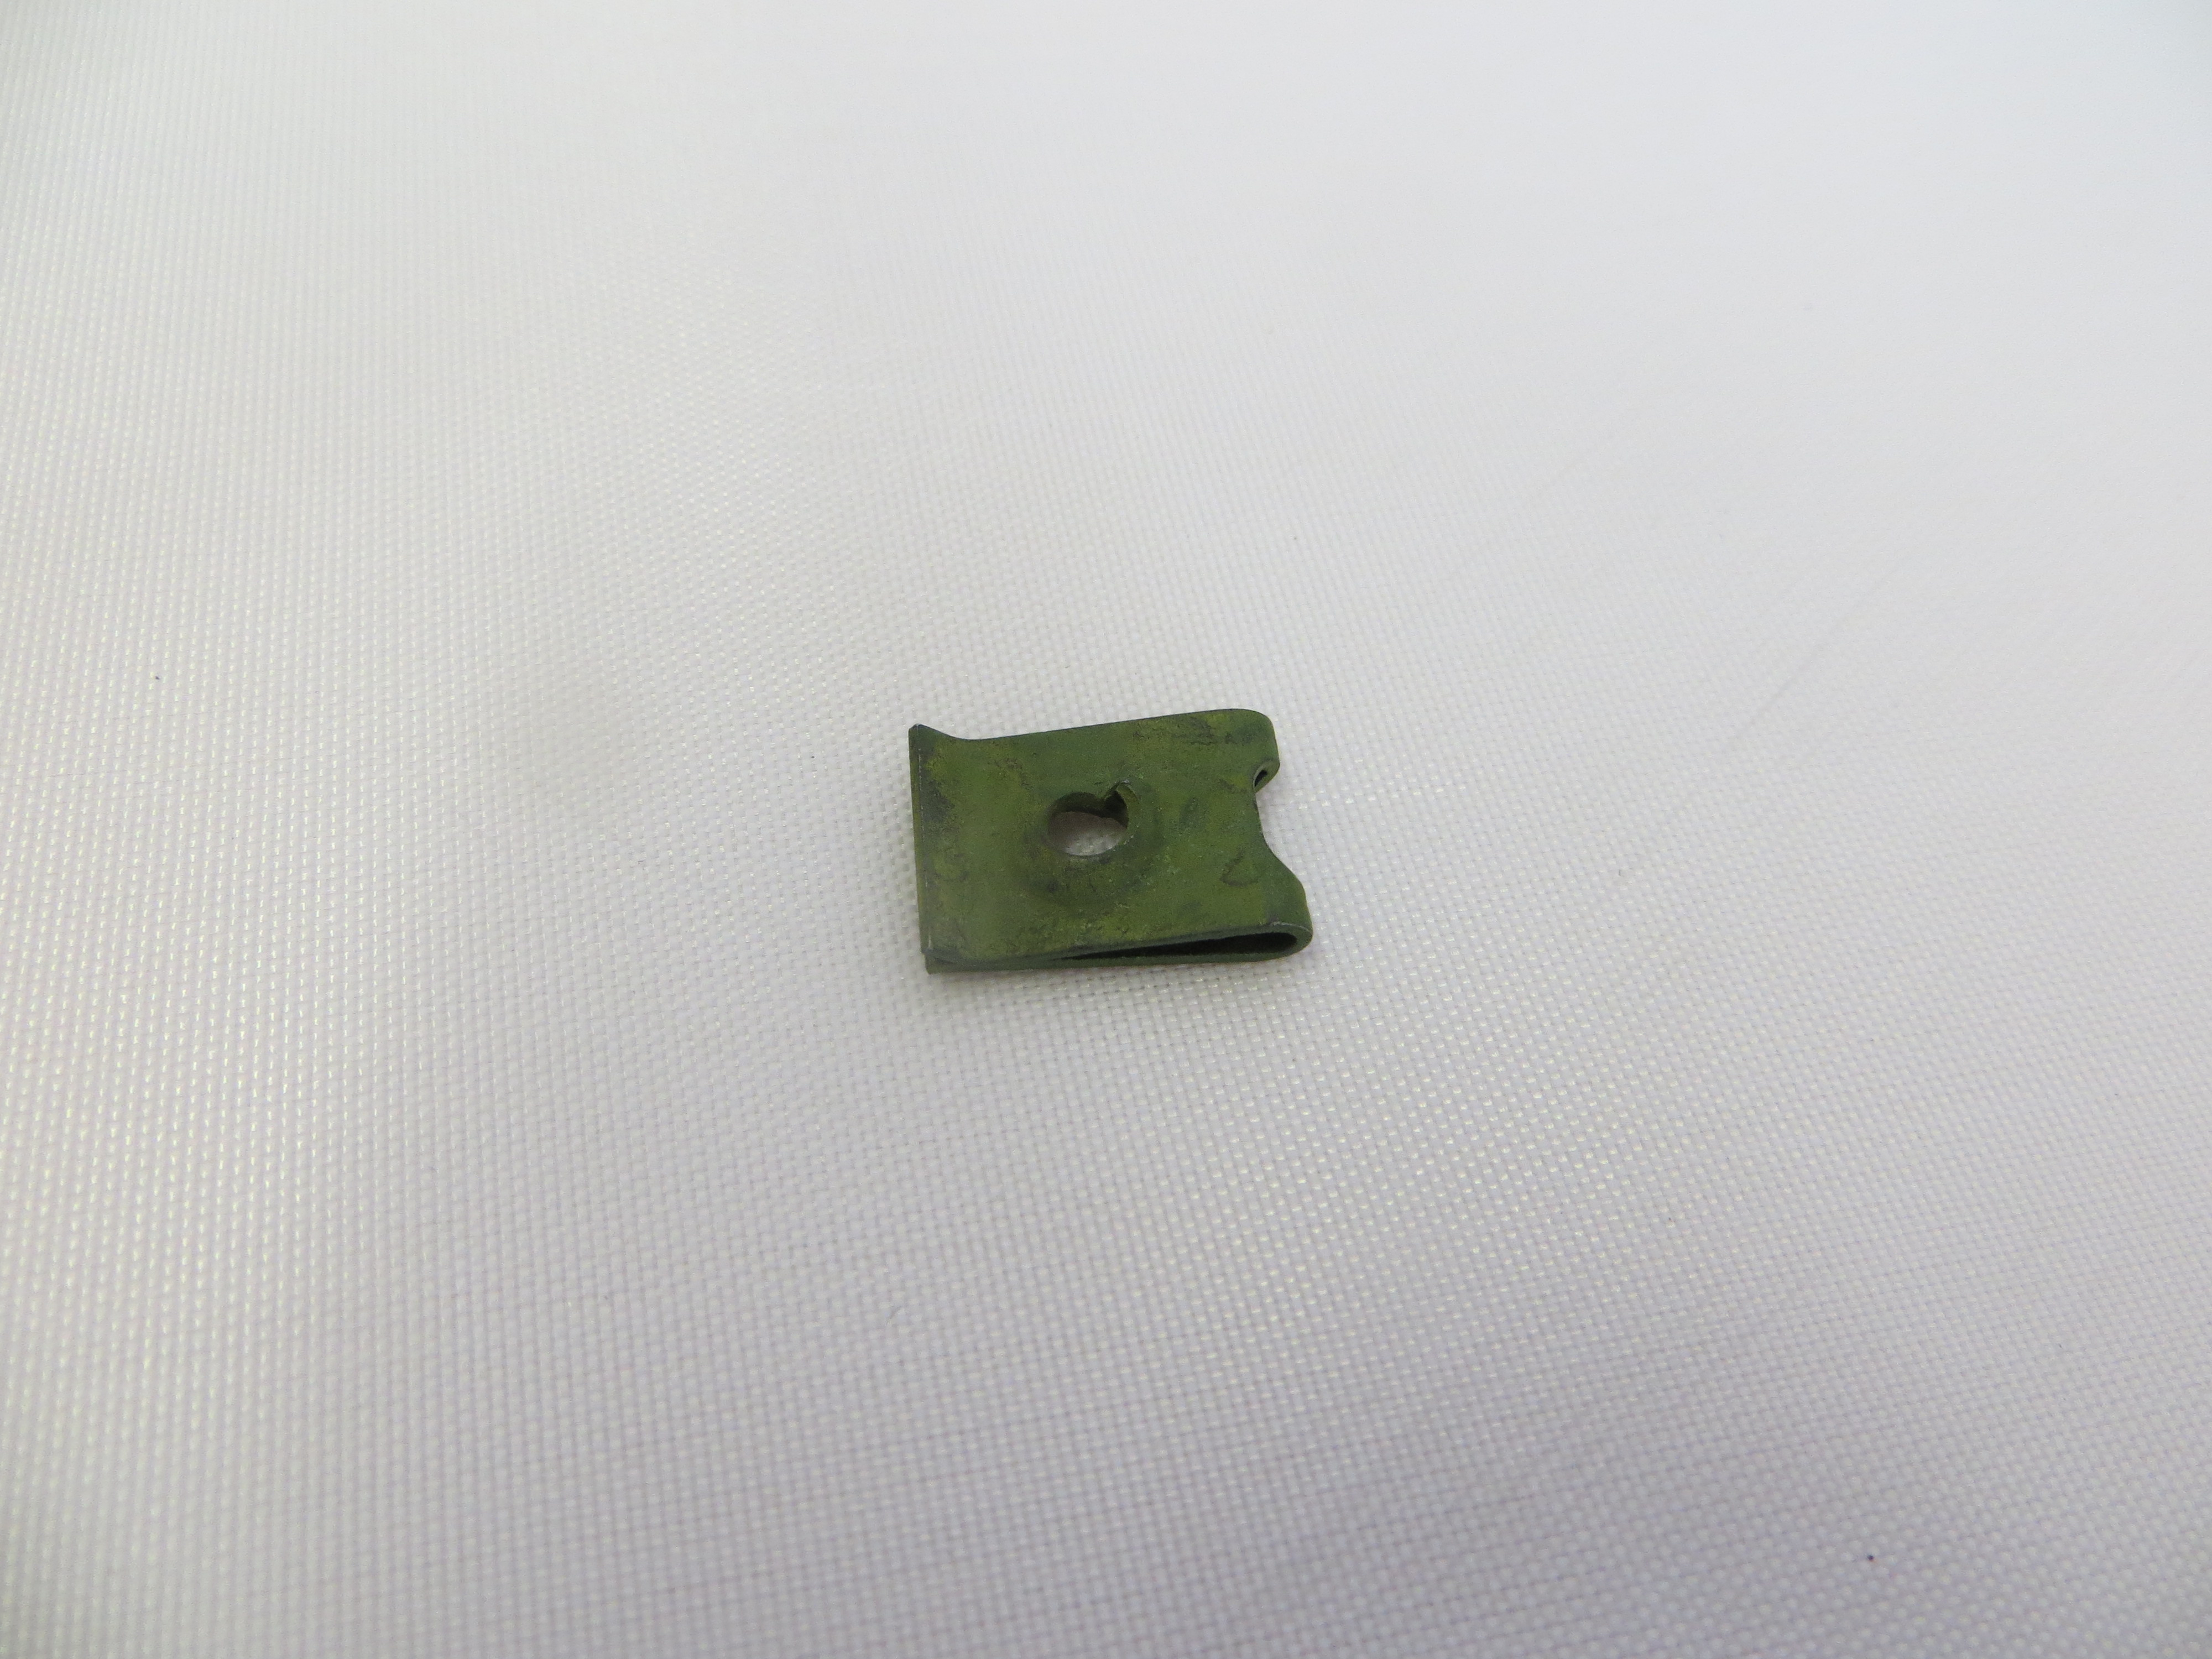 U-Type Speed Nut - Green - 8AB